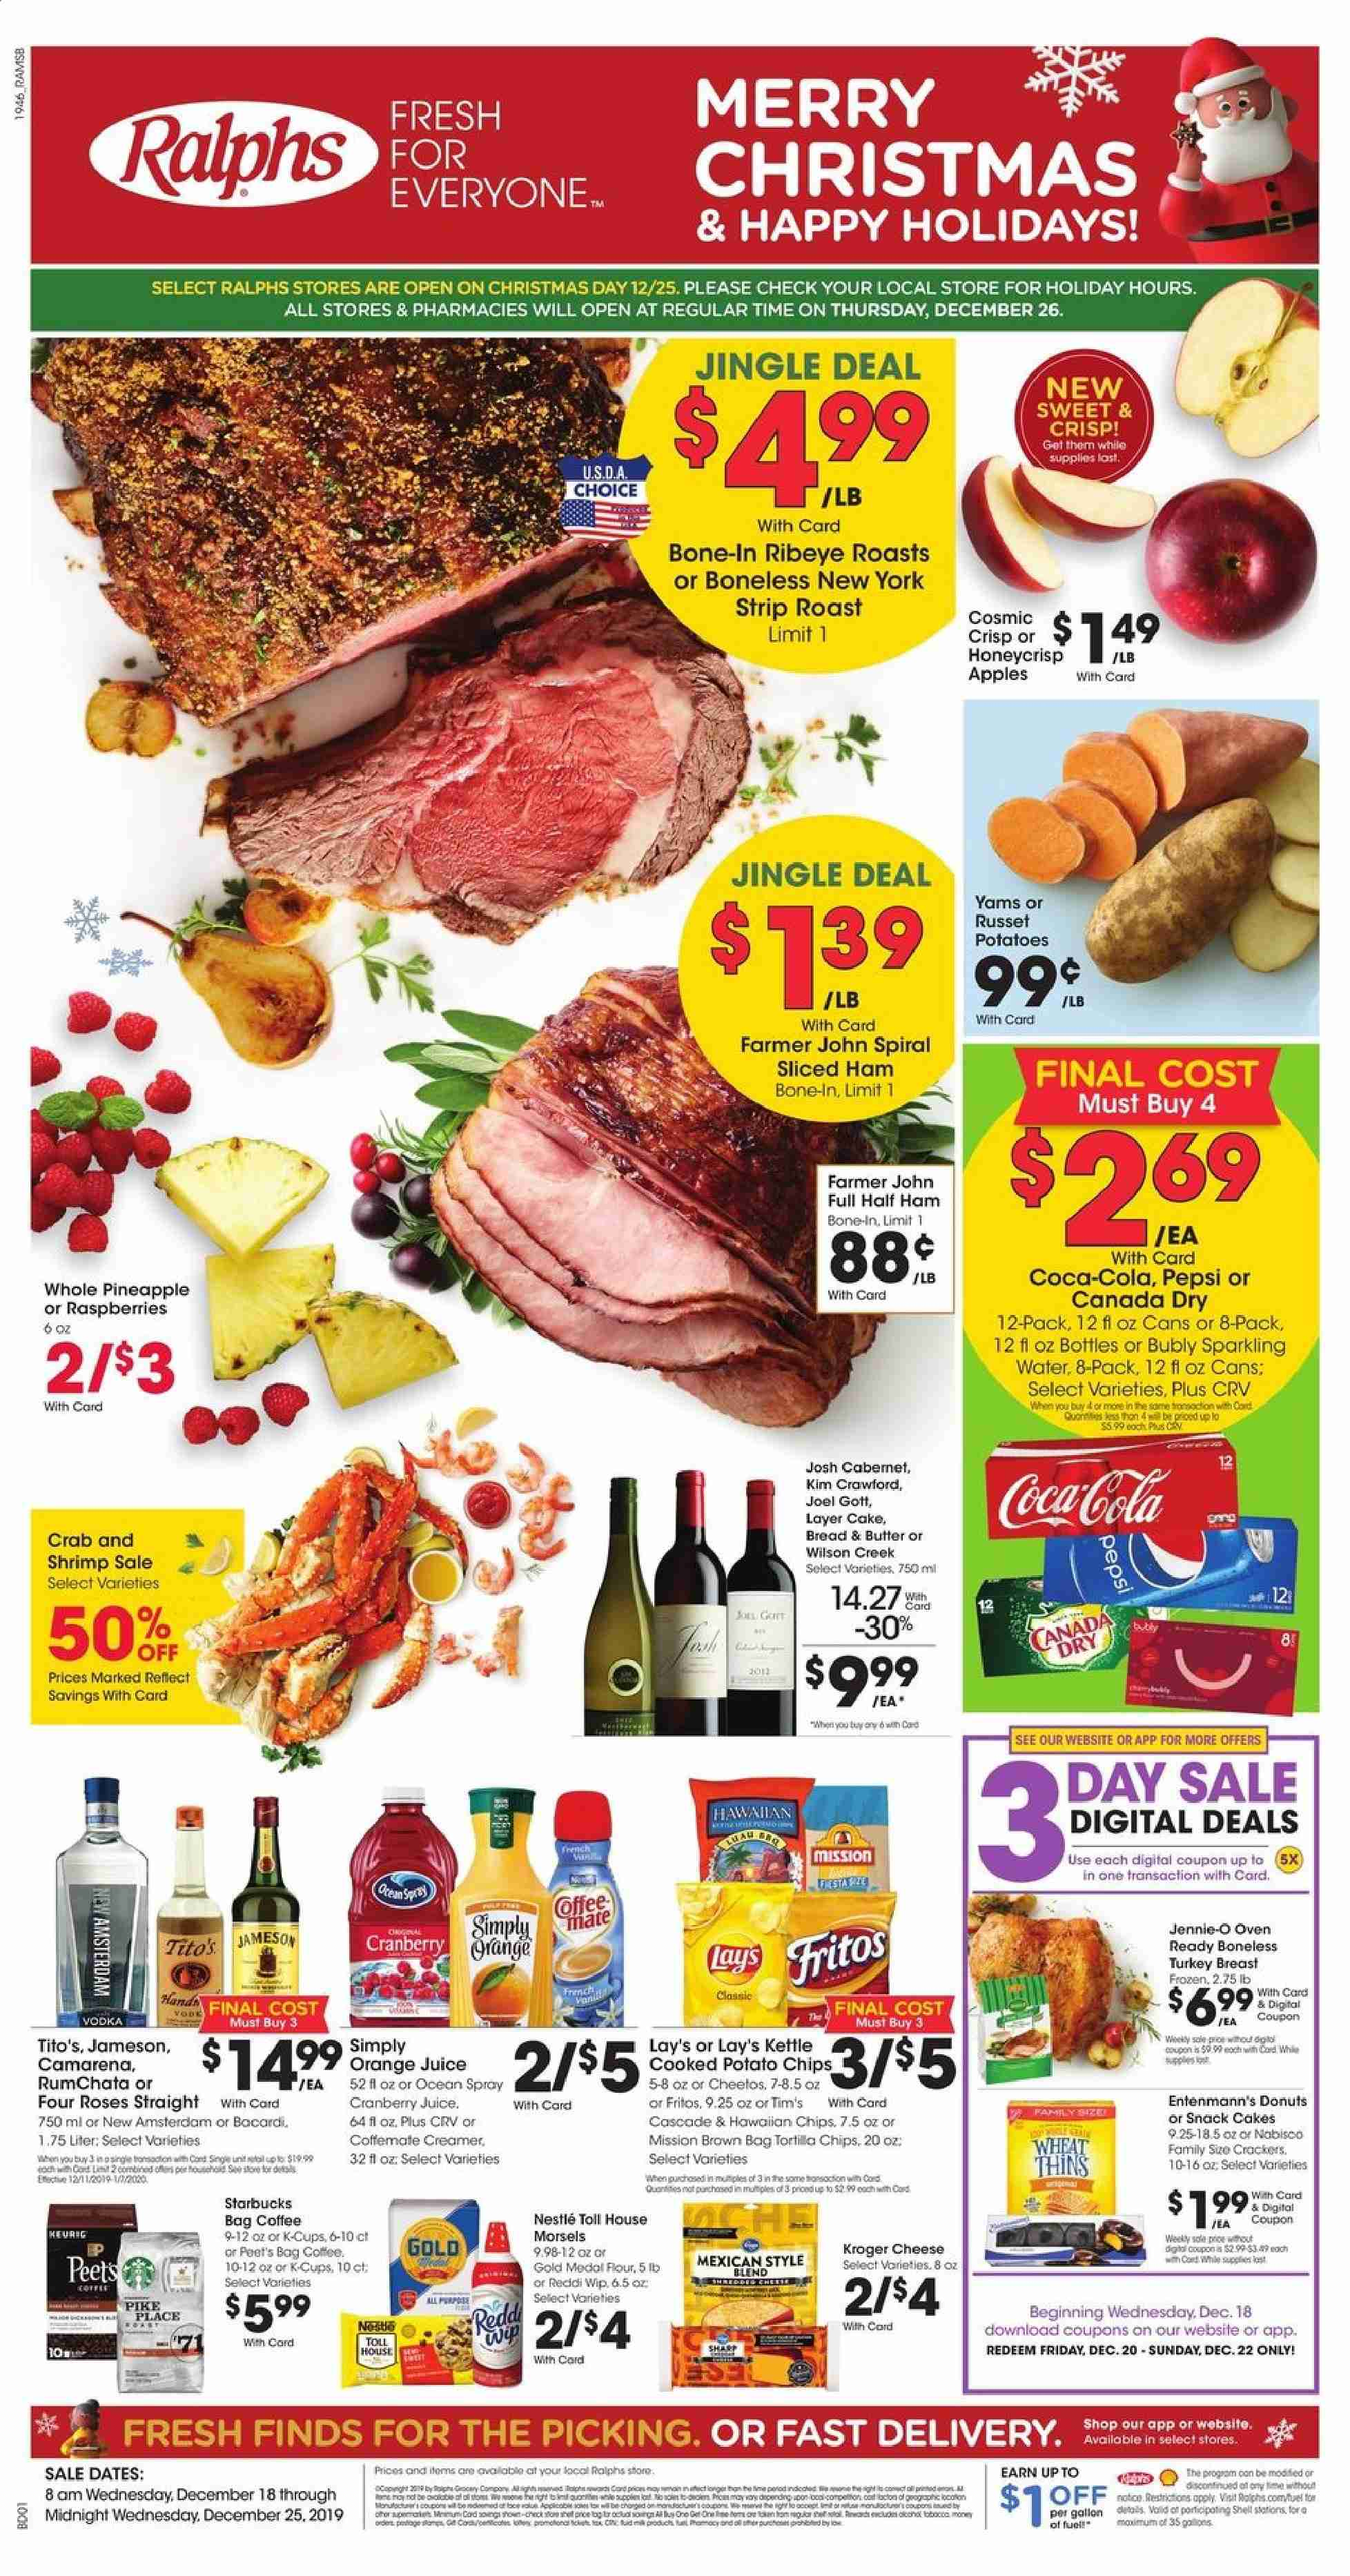 Ralphs Flyer - 12.18.2019 - 12.25.2019 - Sales products - russet potatoes, potatoes, apples, raspberries, pineapple, orange, bread, cake, donut, cod, pike, crab, shrimps, ham, cheese, butter, creamer, Nestlé, crackers, tortilla chips, potato chips, Cheetos, chips, snack, Lay's, flour, cranberries, Fritos, Canada Dry, Coca-Cola, cranberry juice, Pepsi, orange juice, juice, water, coffee, Bacardi, vodka, Jameson, turkey, turkey breast, Frozen, Sharp, half ham, kettle, Wilson, bag, roses, Cascade, Starbucks. Page 1.